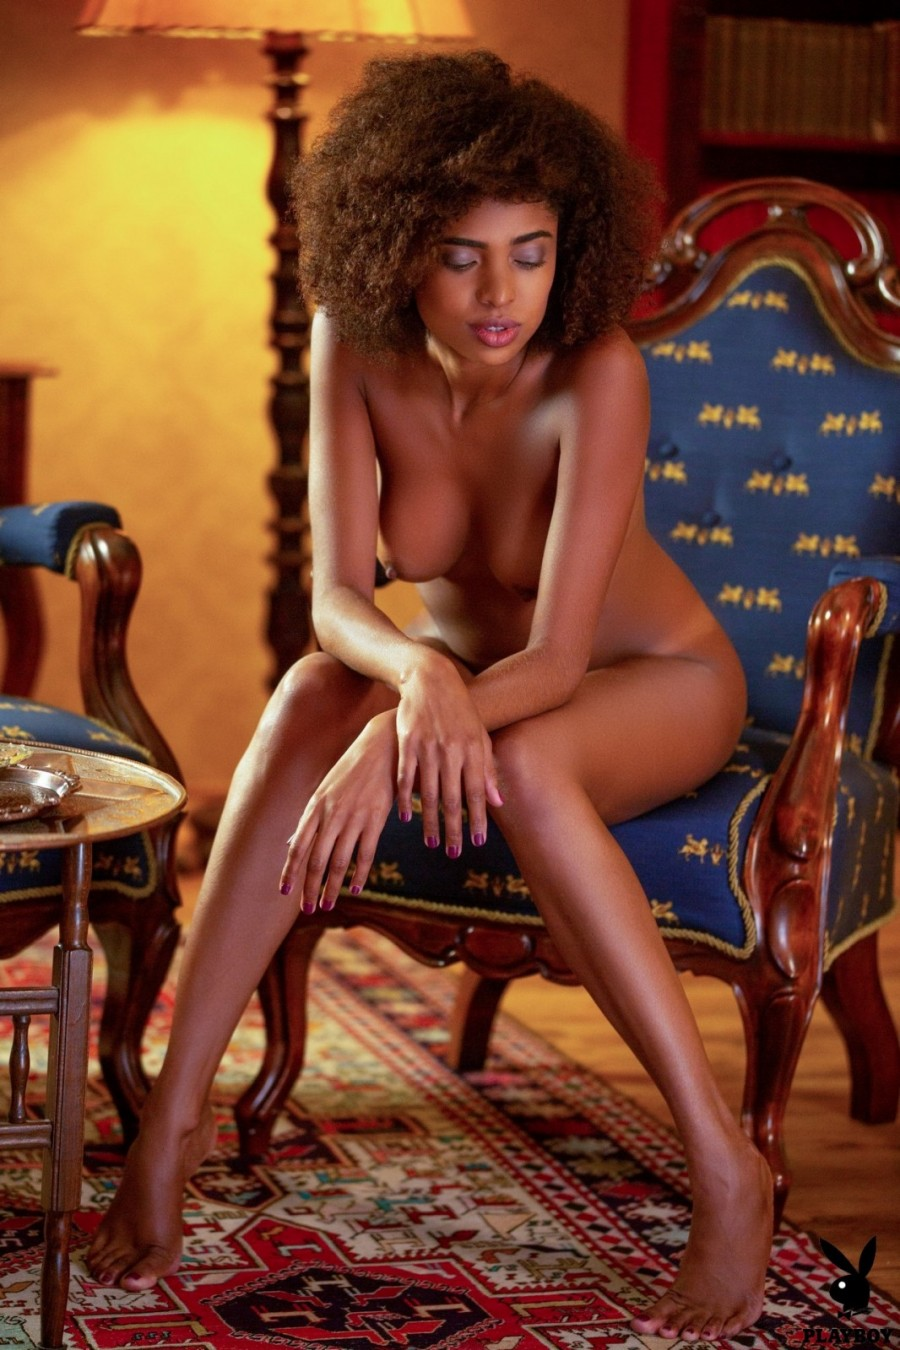 Curly black girl strips and poses